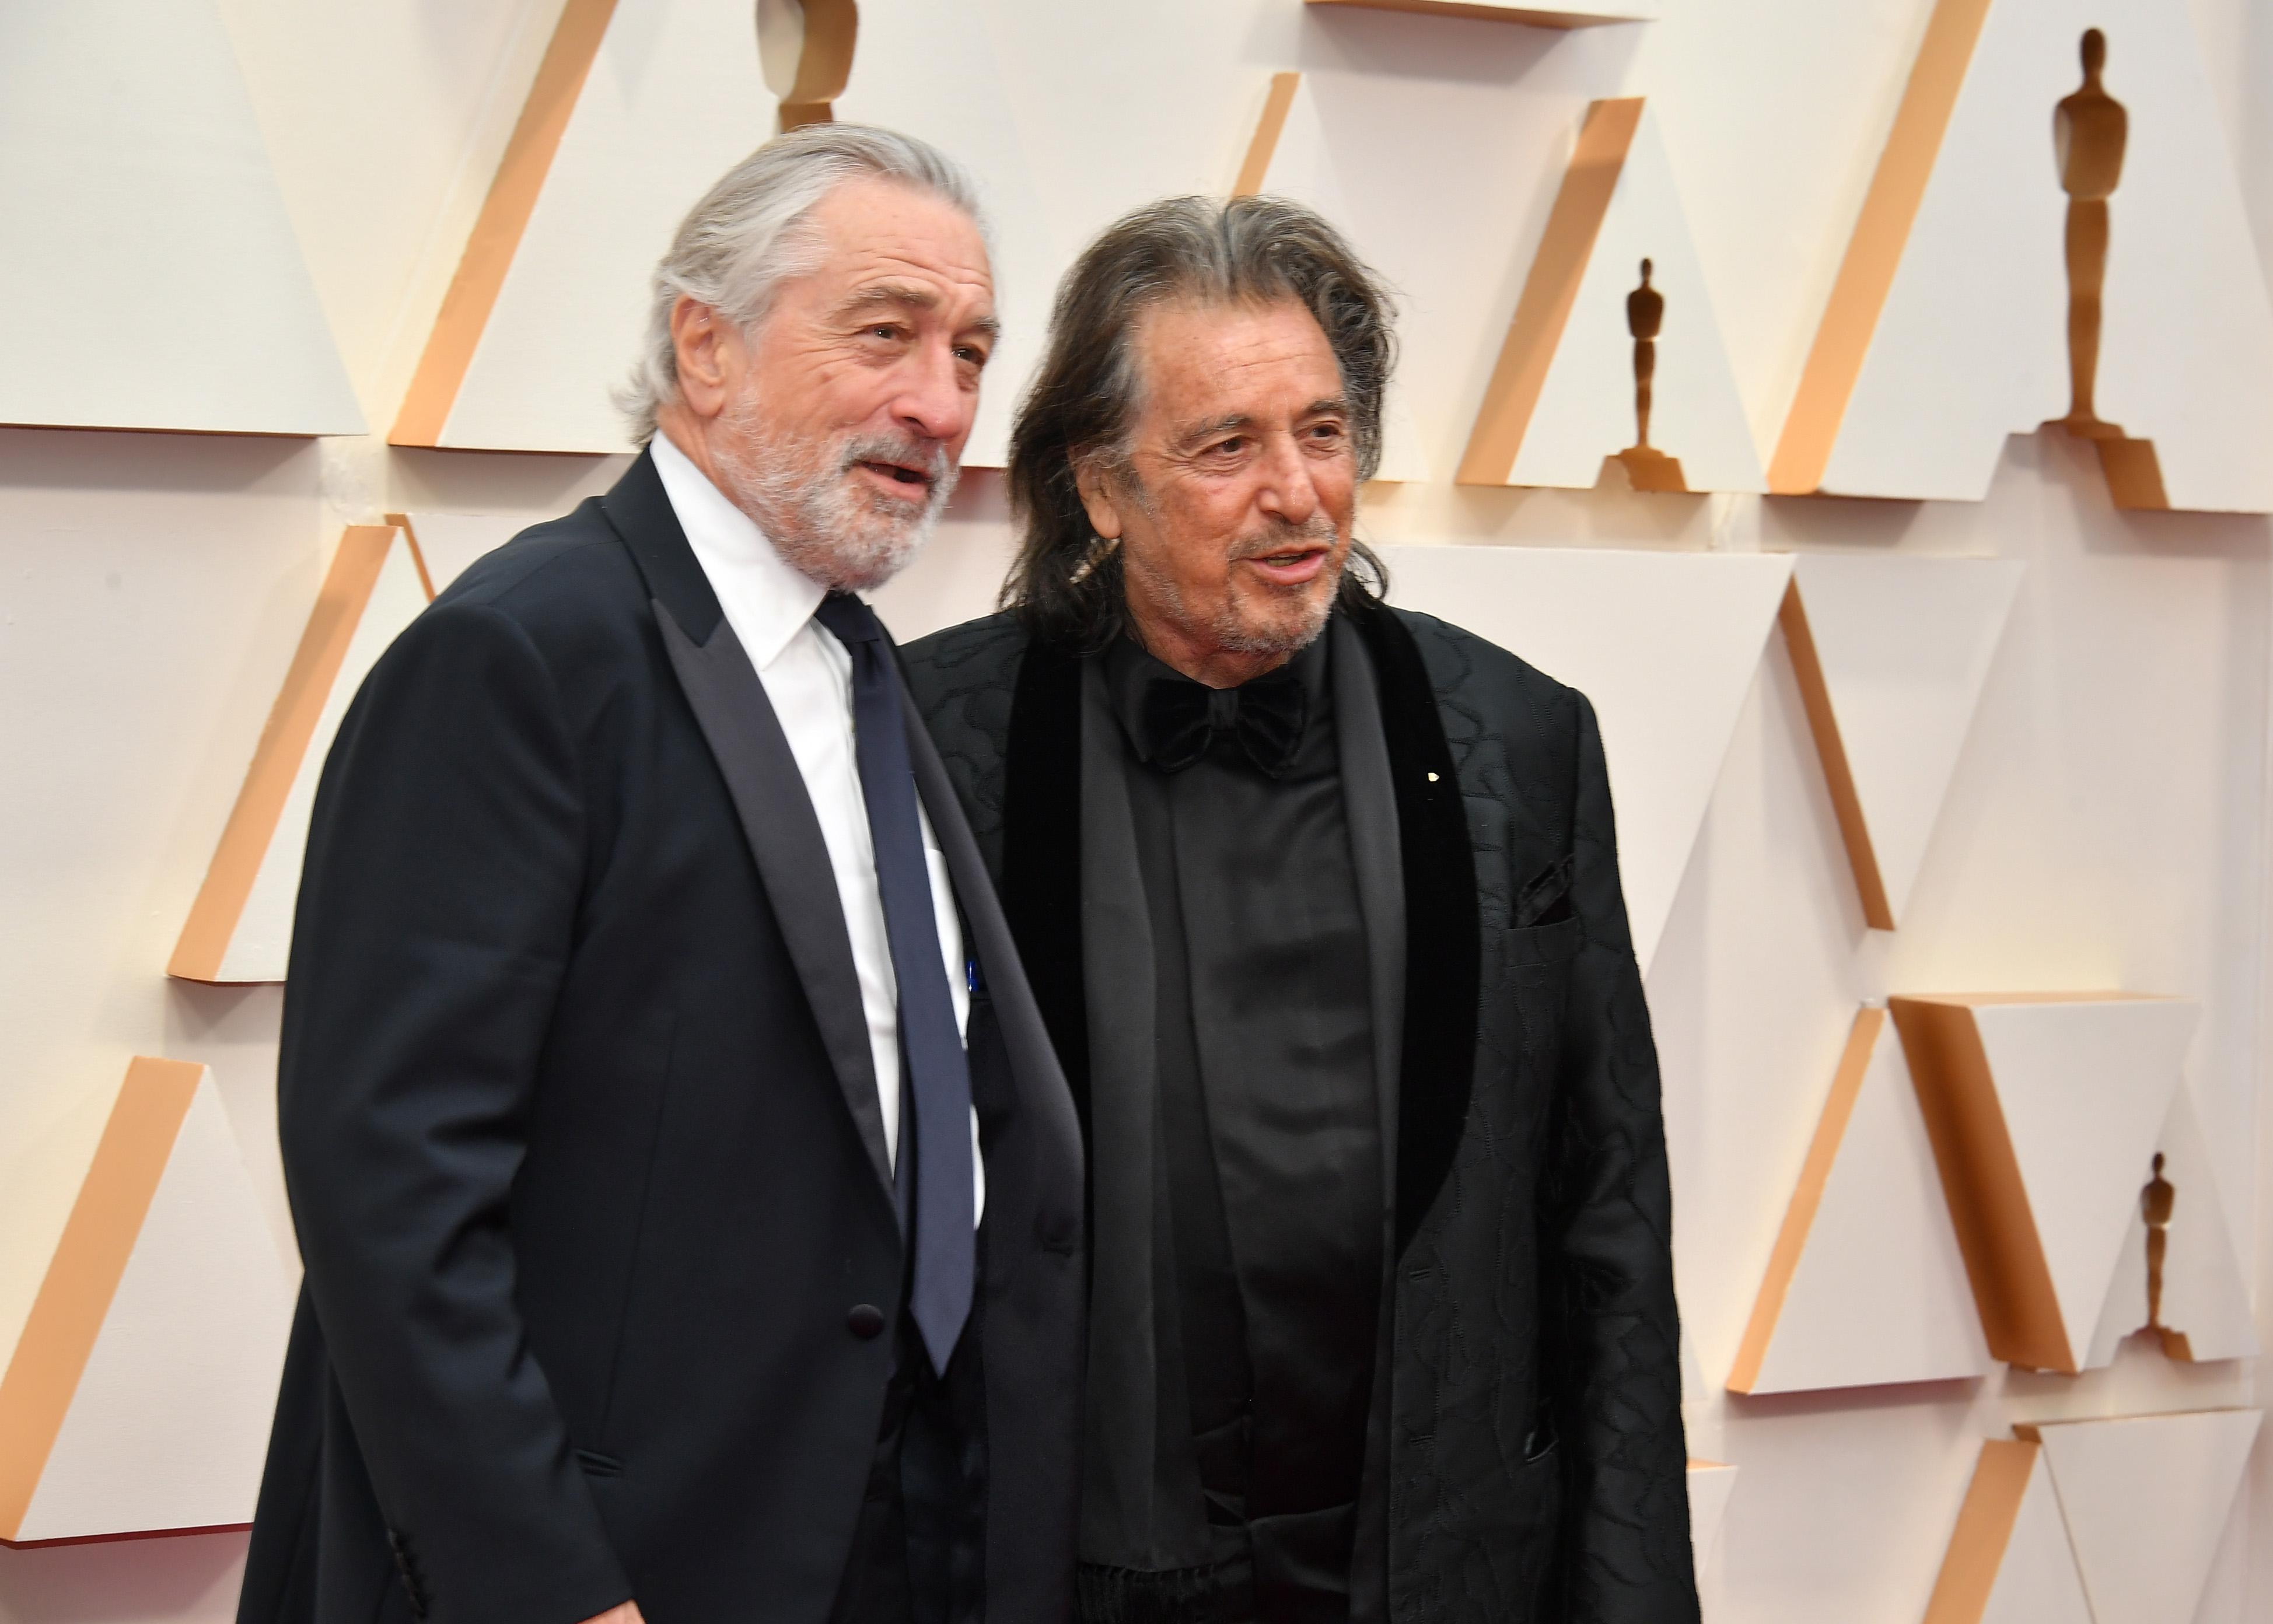 HOLLYWOOD, CALIFORNIA - FEBRUARY 09: (L-R) Robert De Niro and Al Pacino attend the 92nd Annual Academy Awards at Hollywood and Highland on February 09, 2020 in Hollywood, California. (Photo by Amy Sussman/Getty Images)